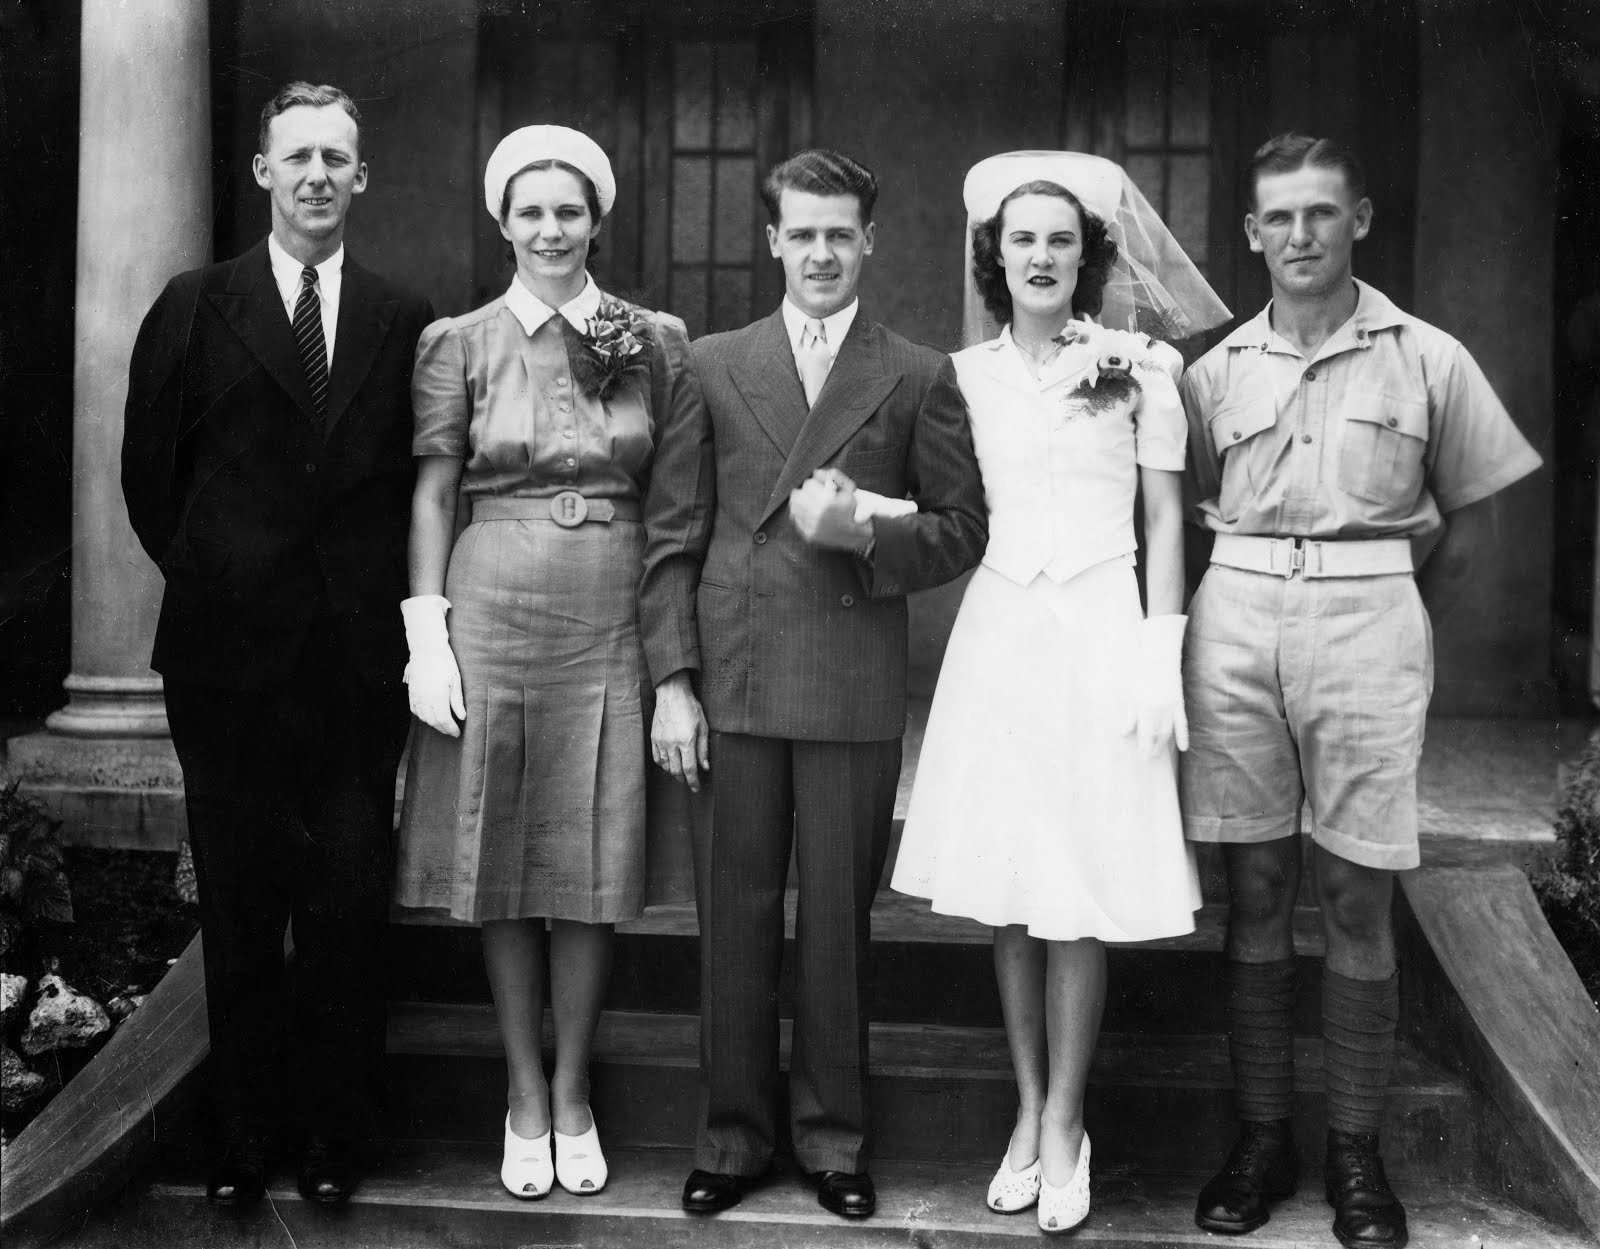 Harry Hunter's marriage to Thelma Hodgson. Also shown: Charles and Janet Broadbent, and Val Donovan